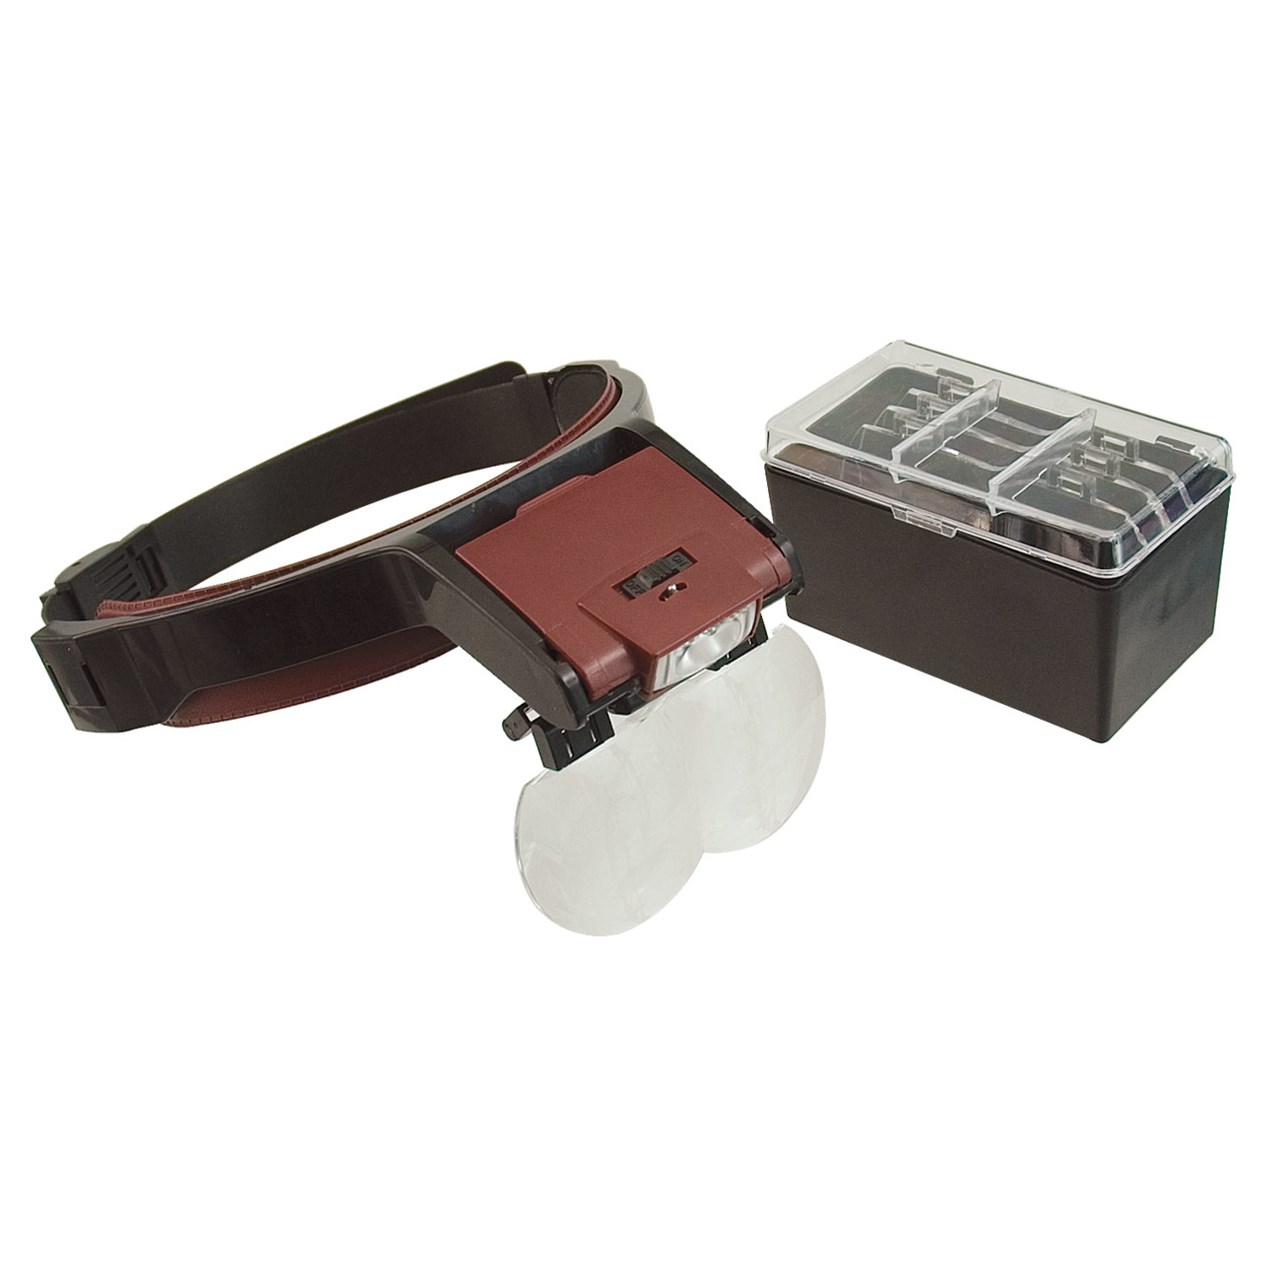 LED MagView Hands-Free Headband Magnifier Kit with 4 Double Lenses